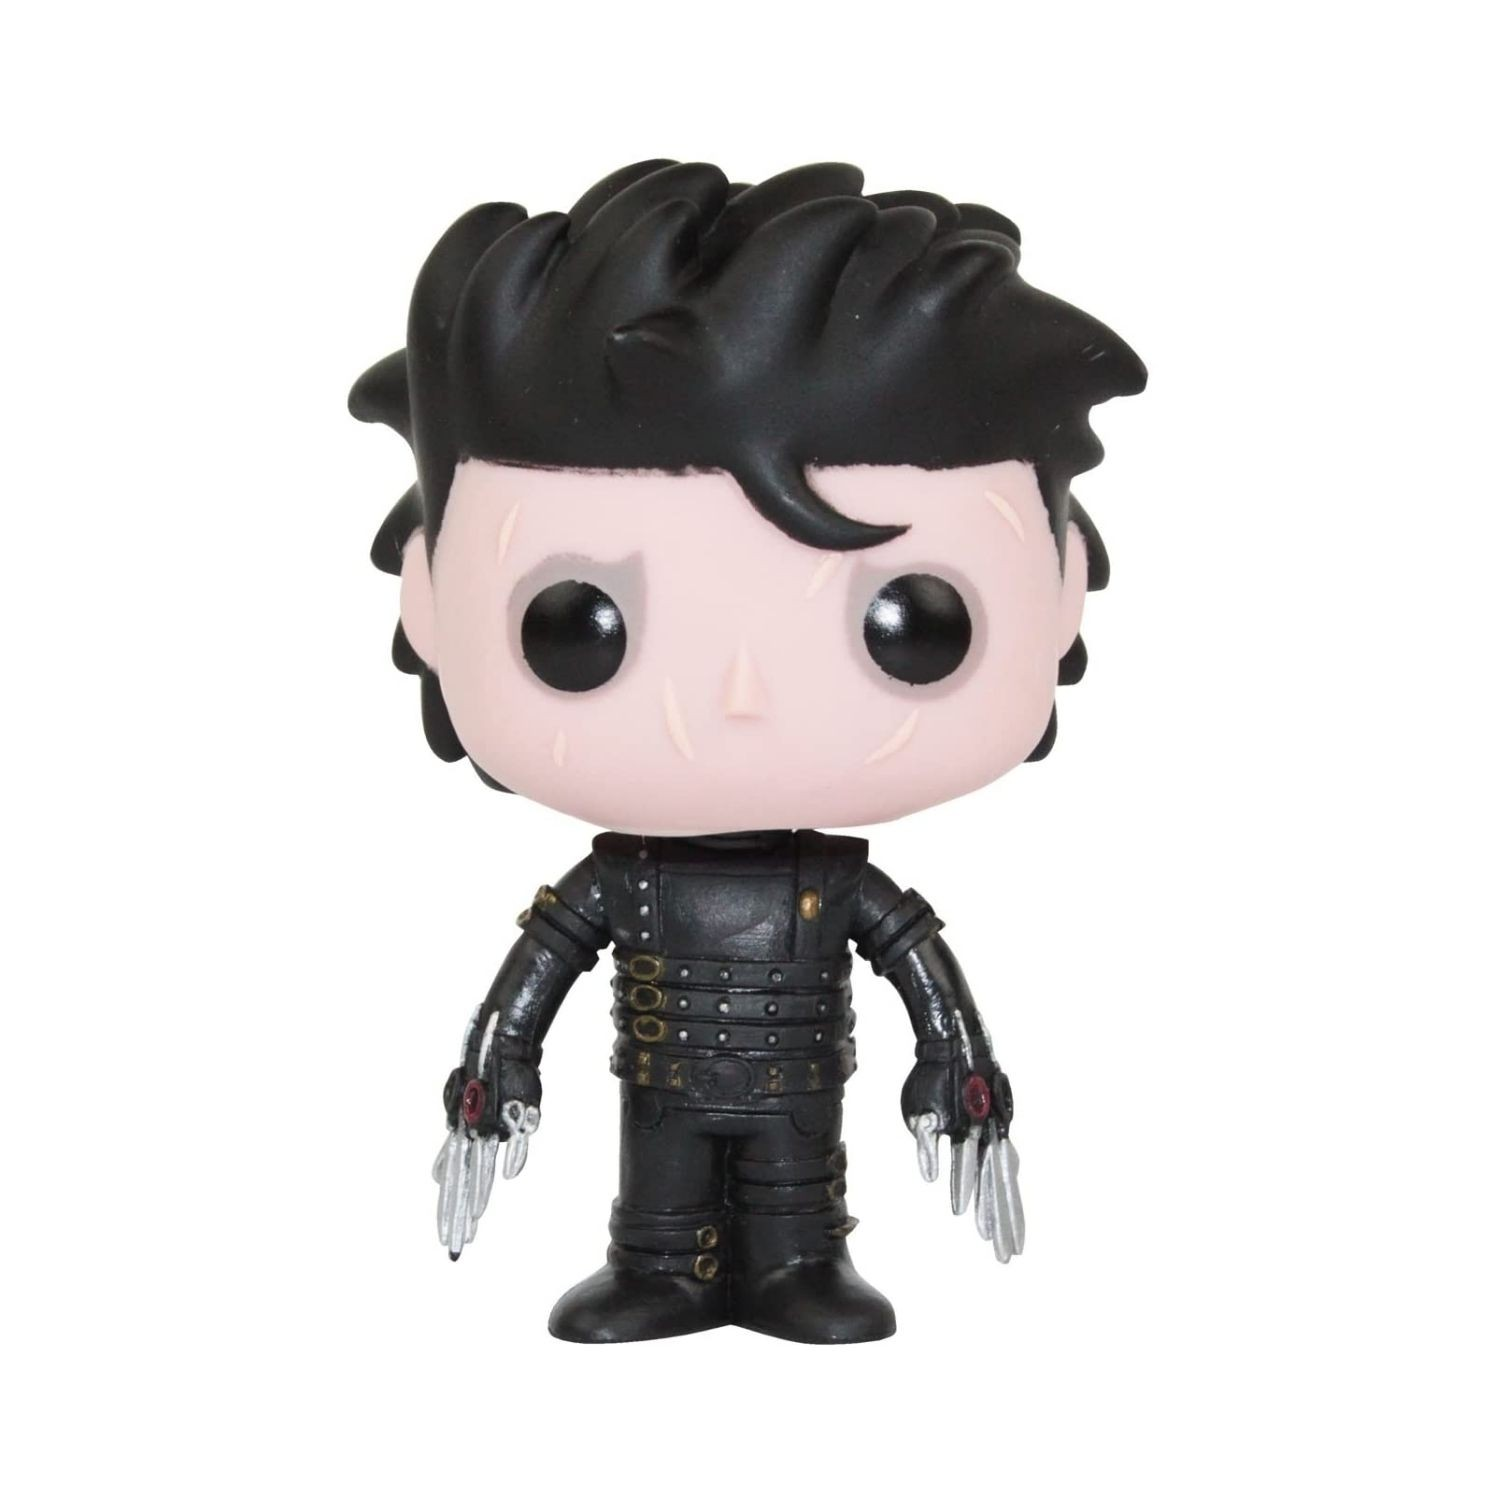 Funko Pop Movies Edward Scissorhands #17 Vaulted  - Game Land Brinquedos